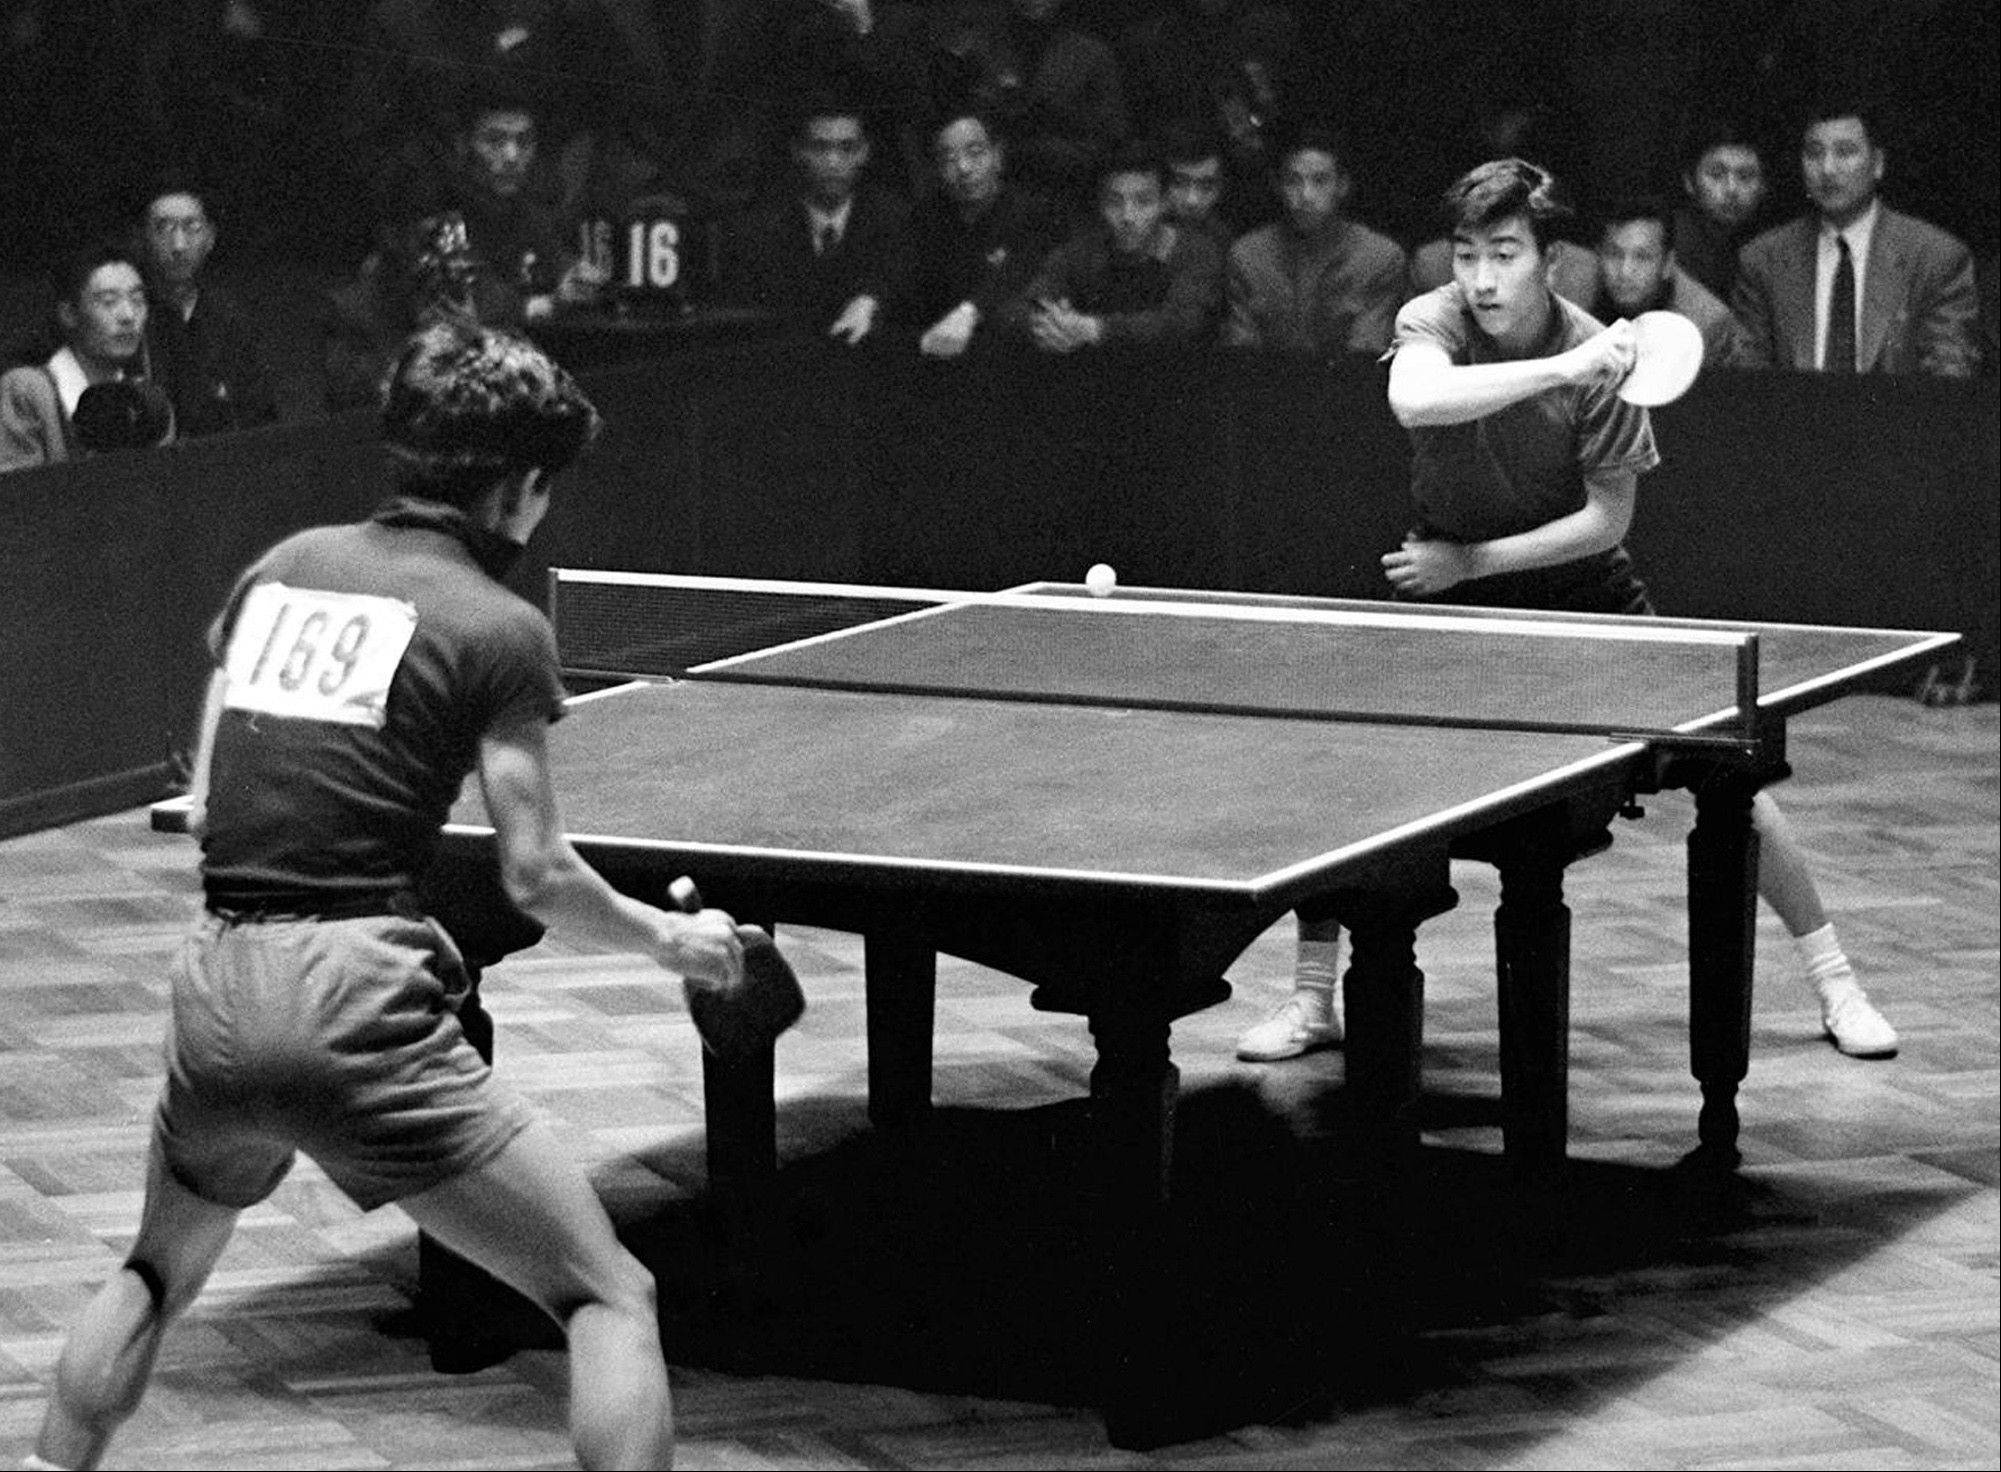 Zhuang Zedong, right, competes in the men's team finals of the 26th World Table Tennis Championship in Beijing in 1961.